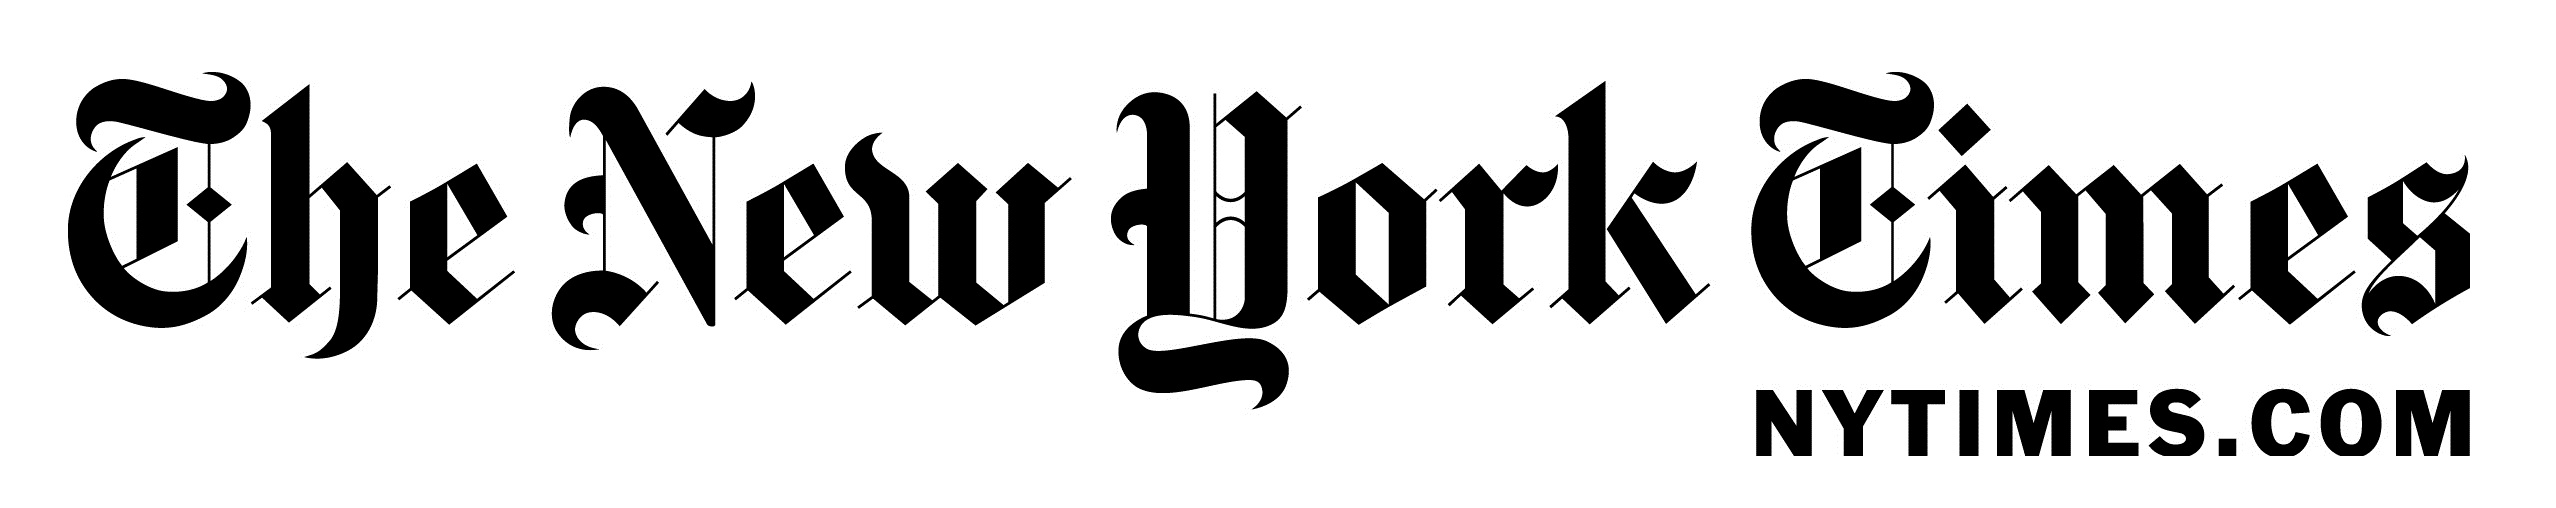 The New York Times Logo Png (99+ images in Collection) Page 1.